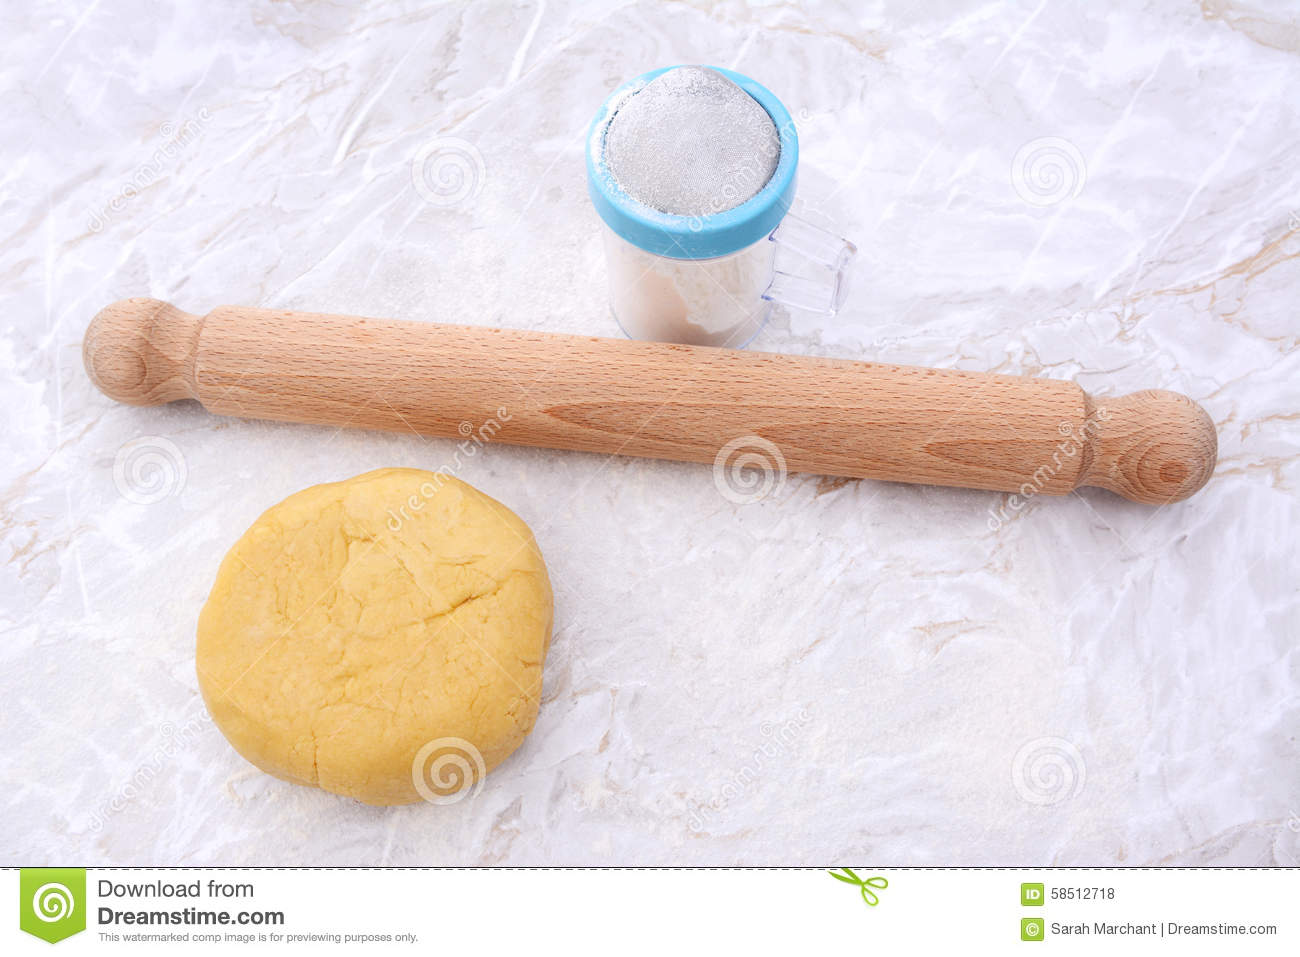 Shortcrust pastry with a rolling pin and flour drifter